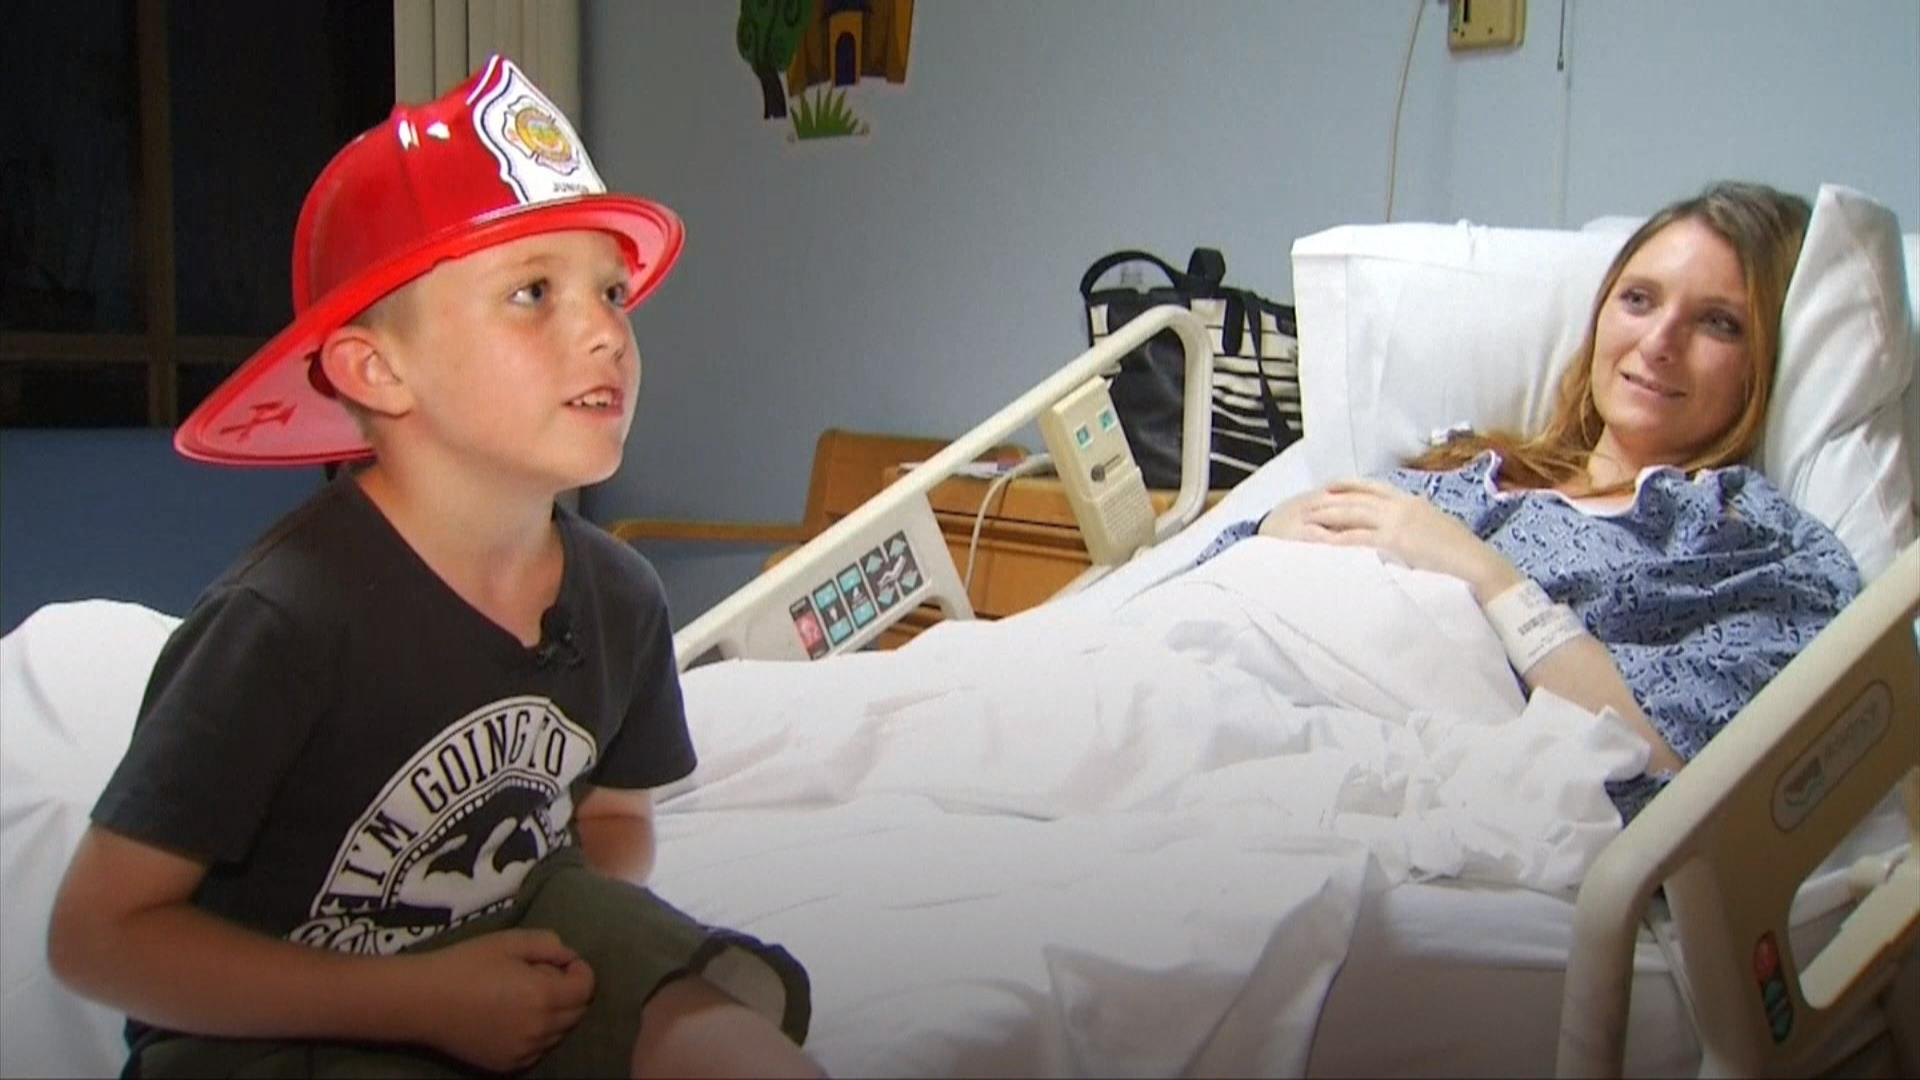 6 Year Old Boy Saves Pregnant Mom After Fall